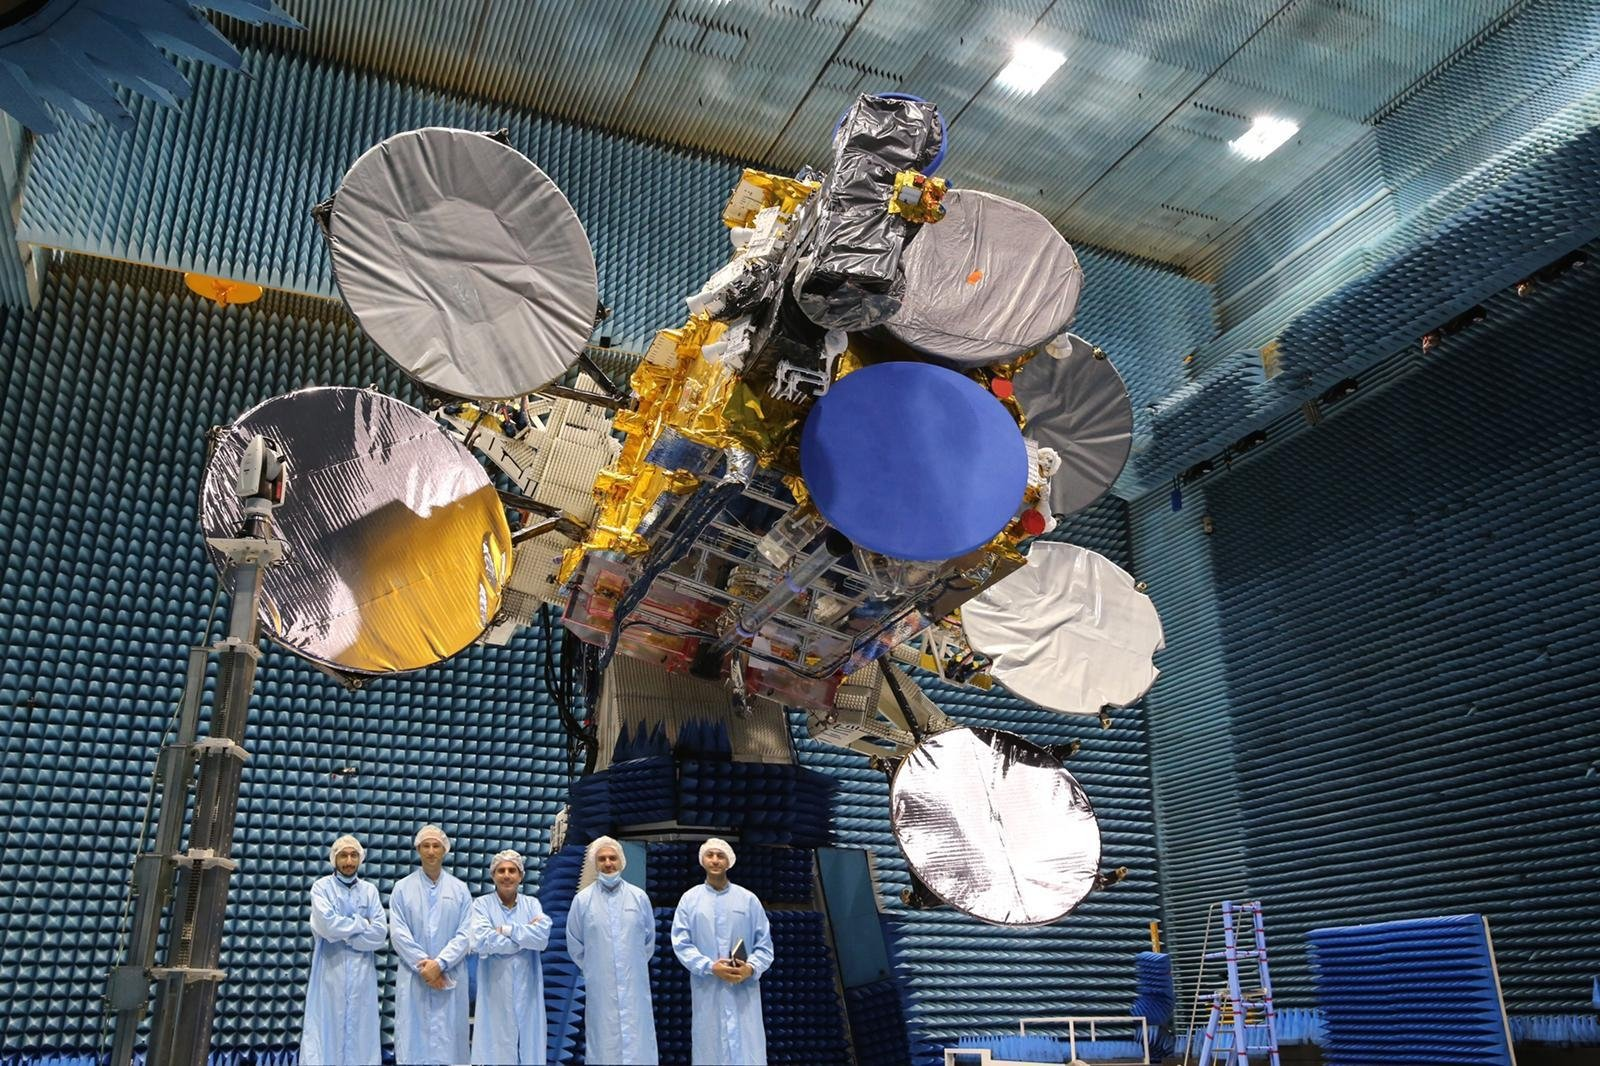 The new-generation communication satellite Türksat 5A at a facility in the capital Ankara, Turkey, Oct. 2, 2020. (AA Photo)